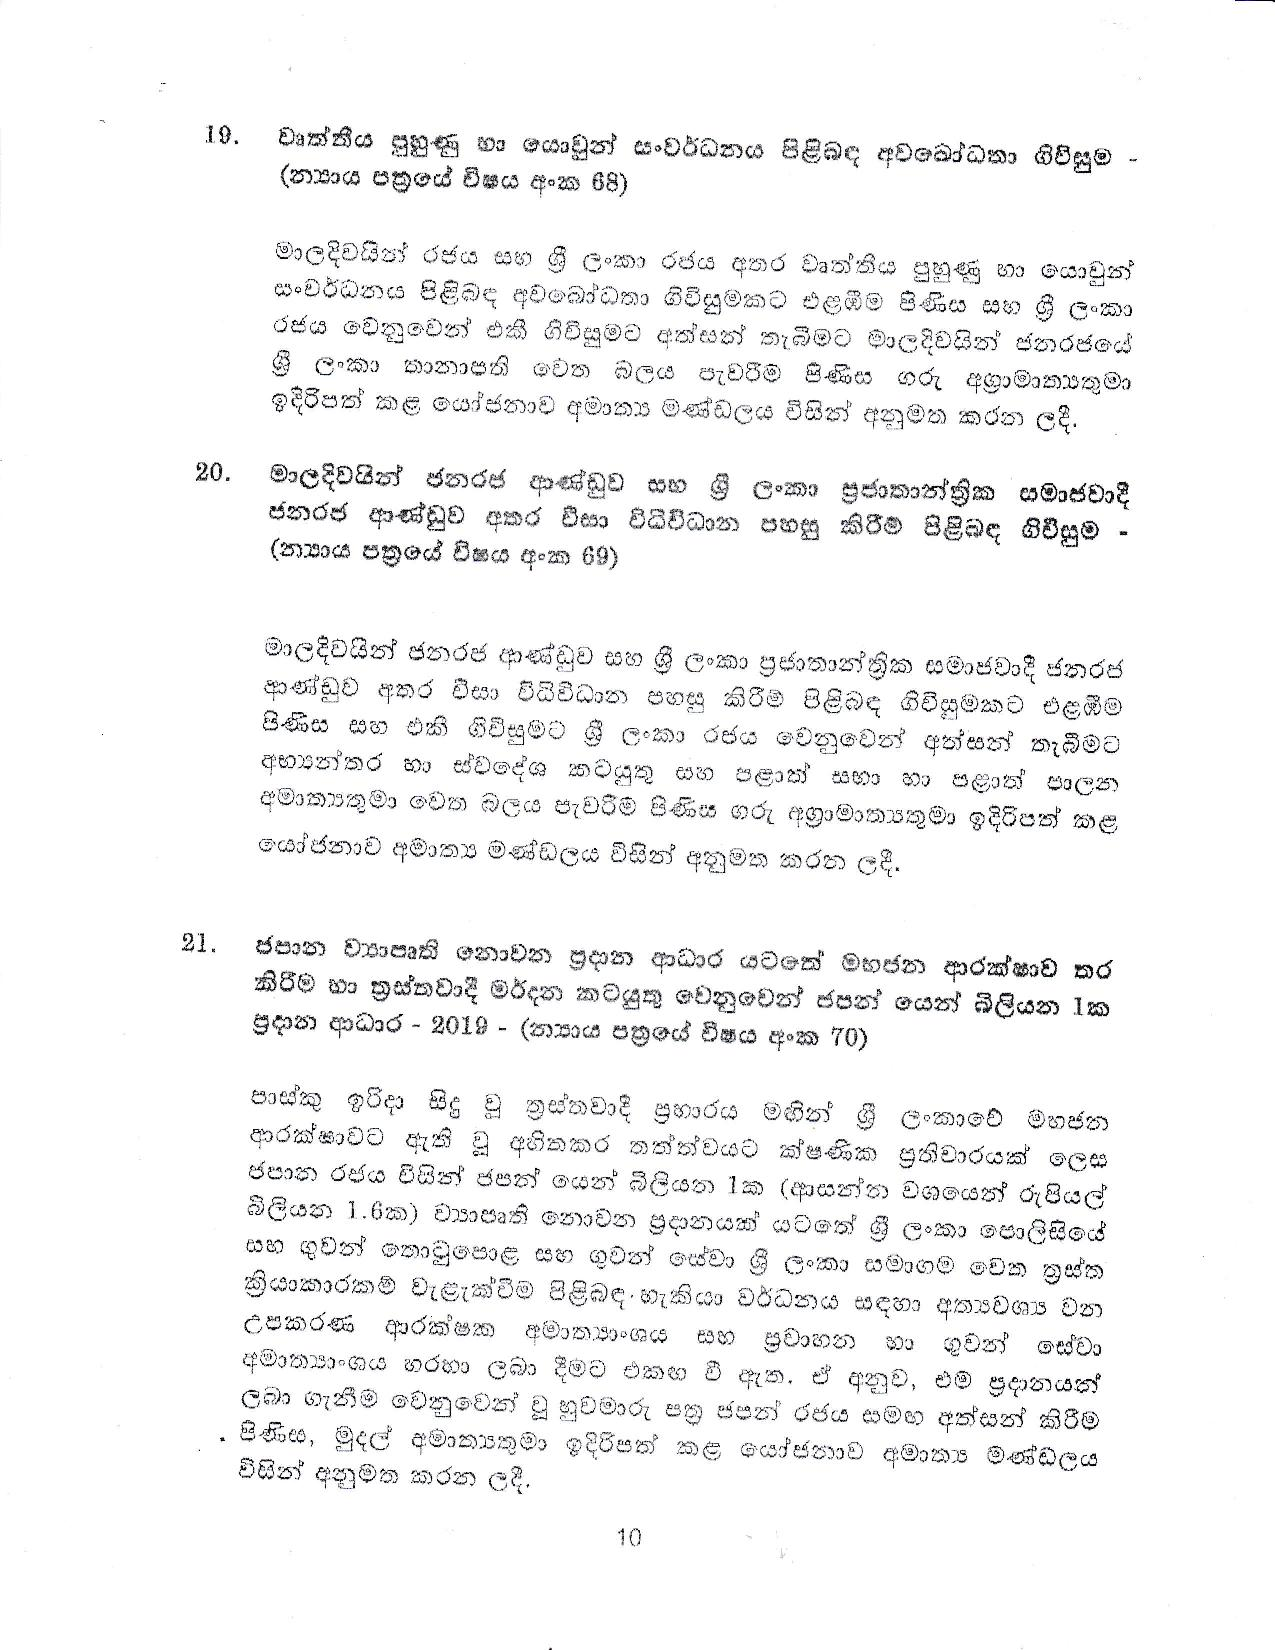 Cabinet Decision 27.08.2019 page 010